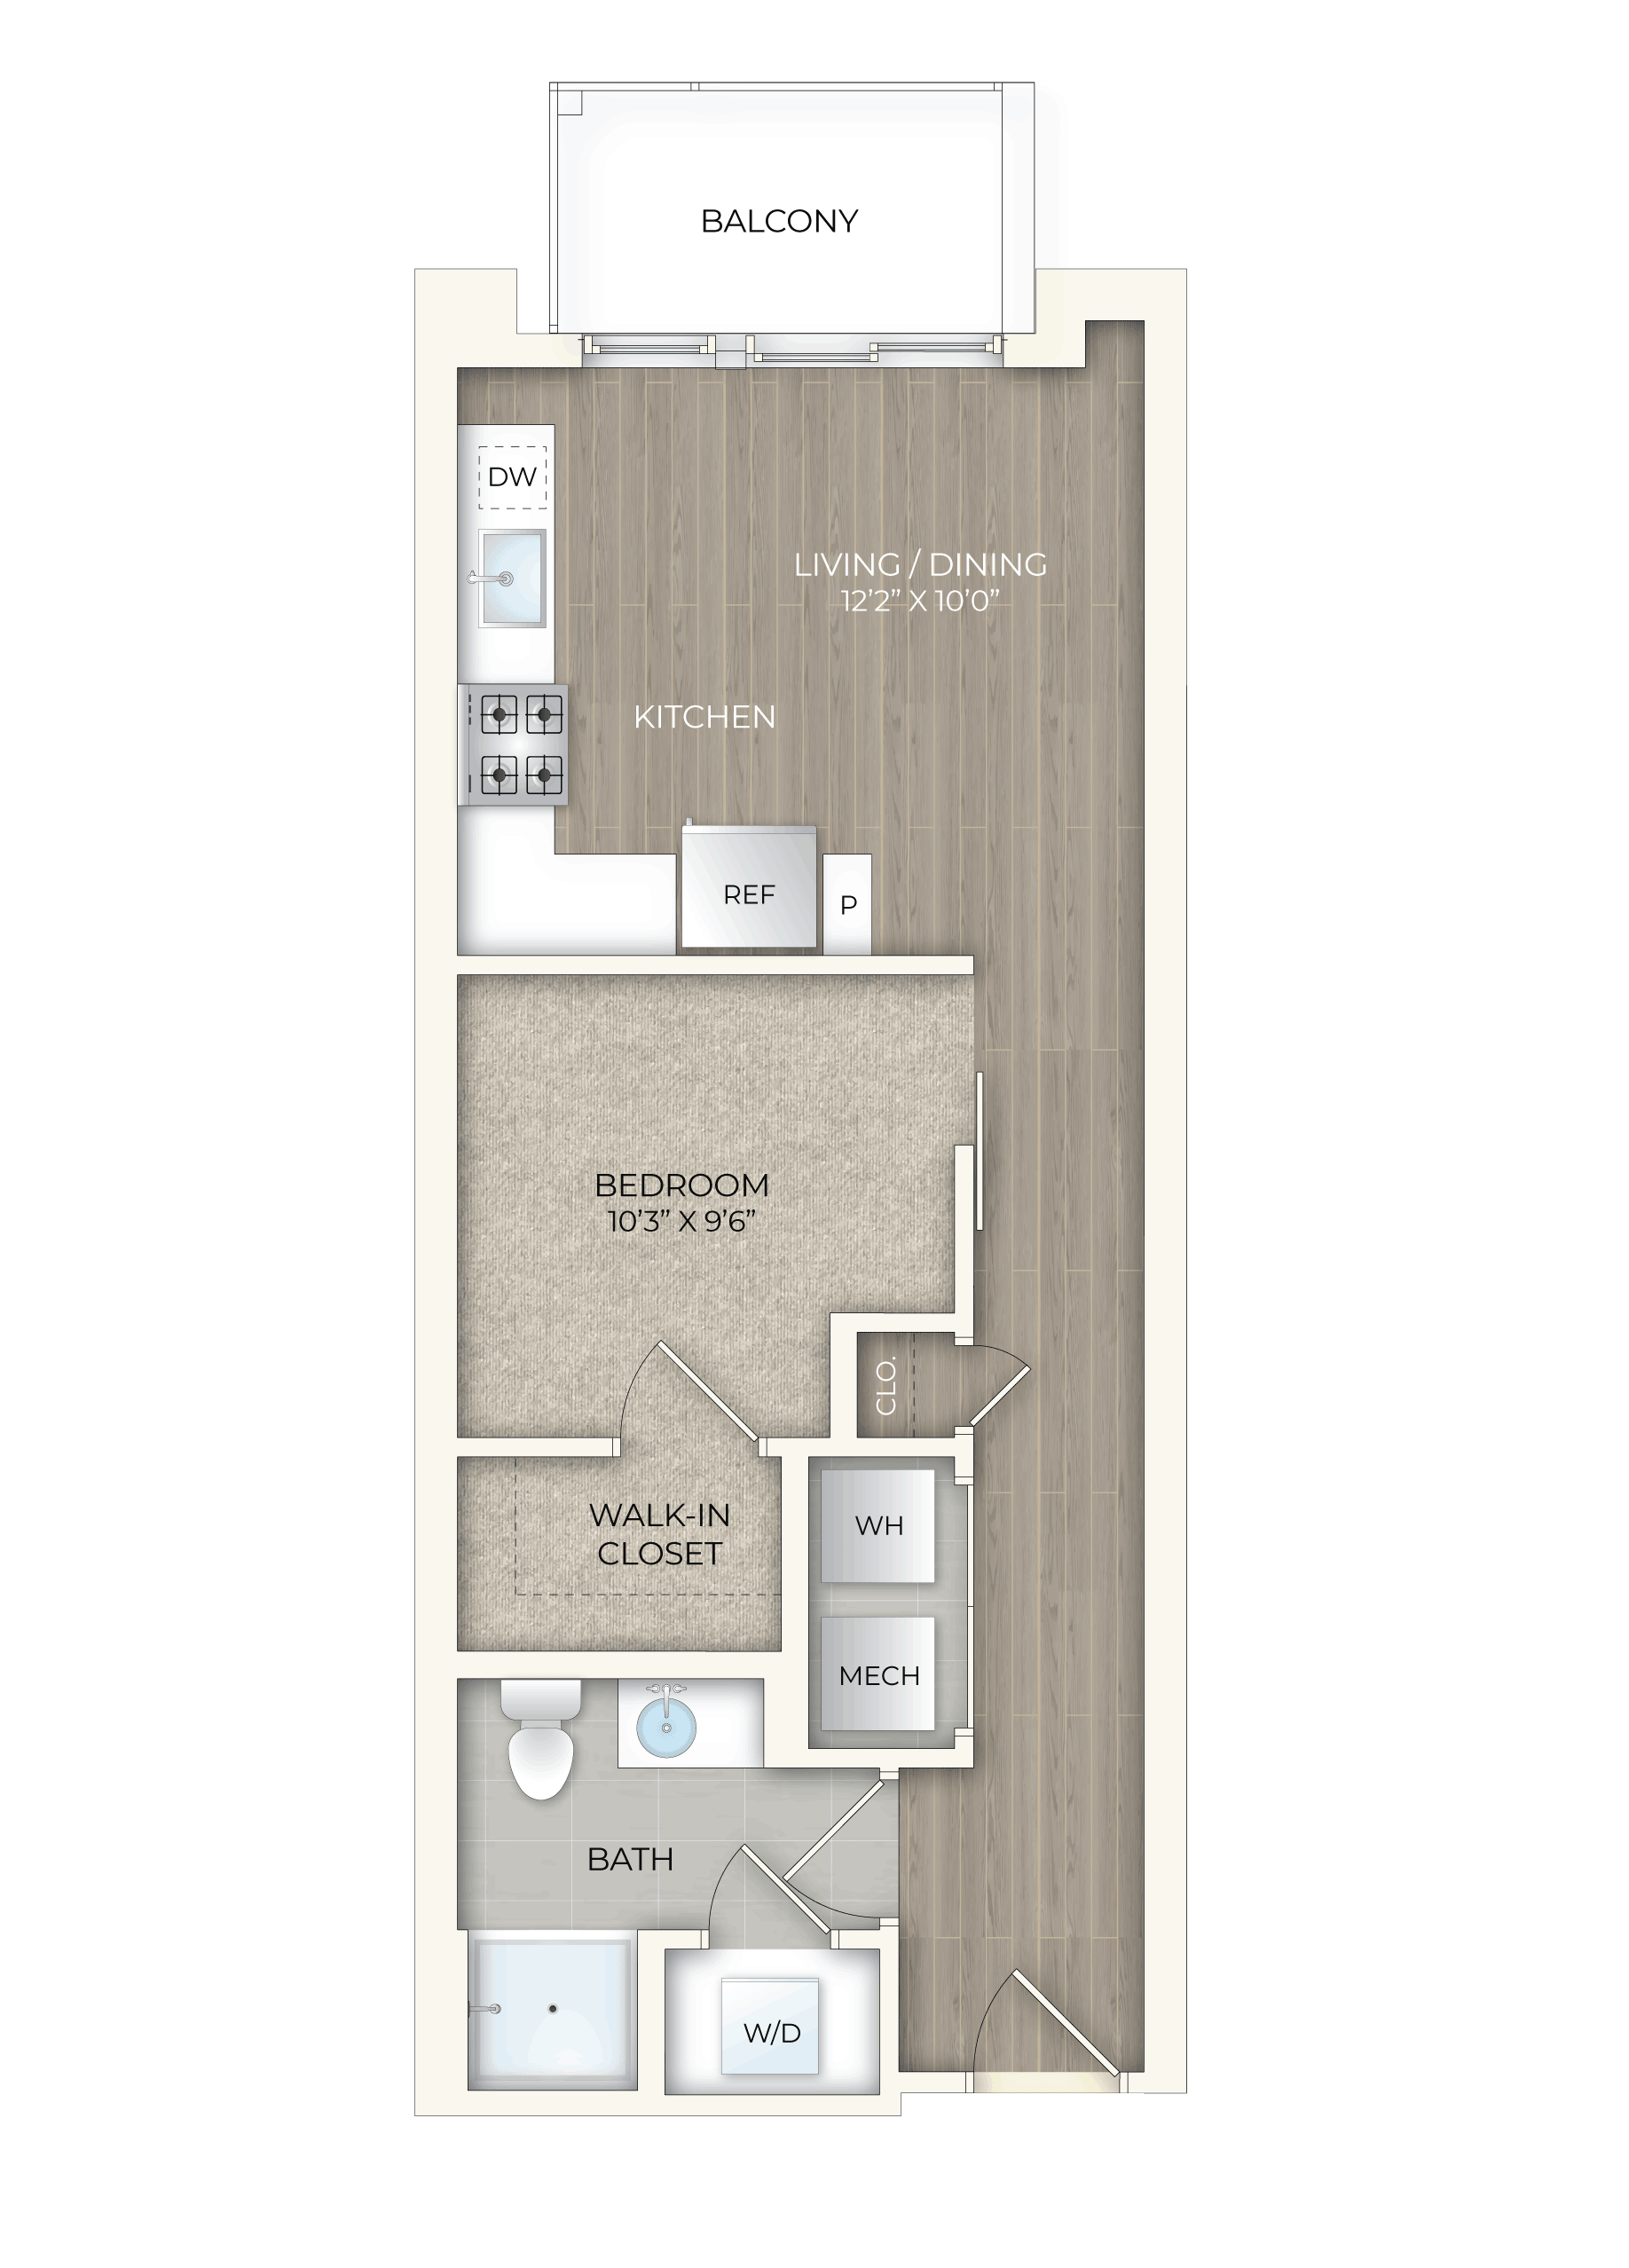 floor plan image of apartment 510S